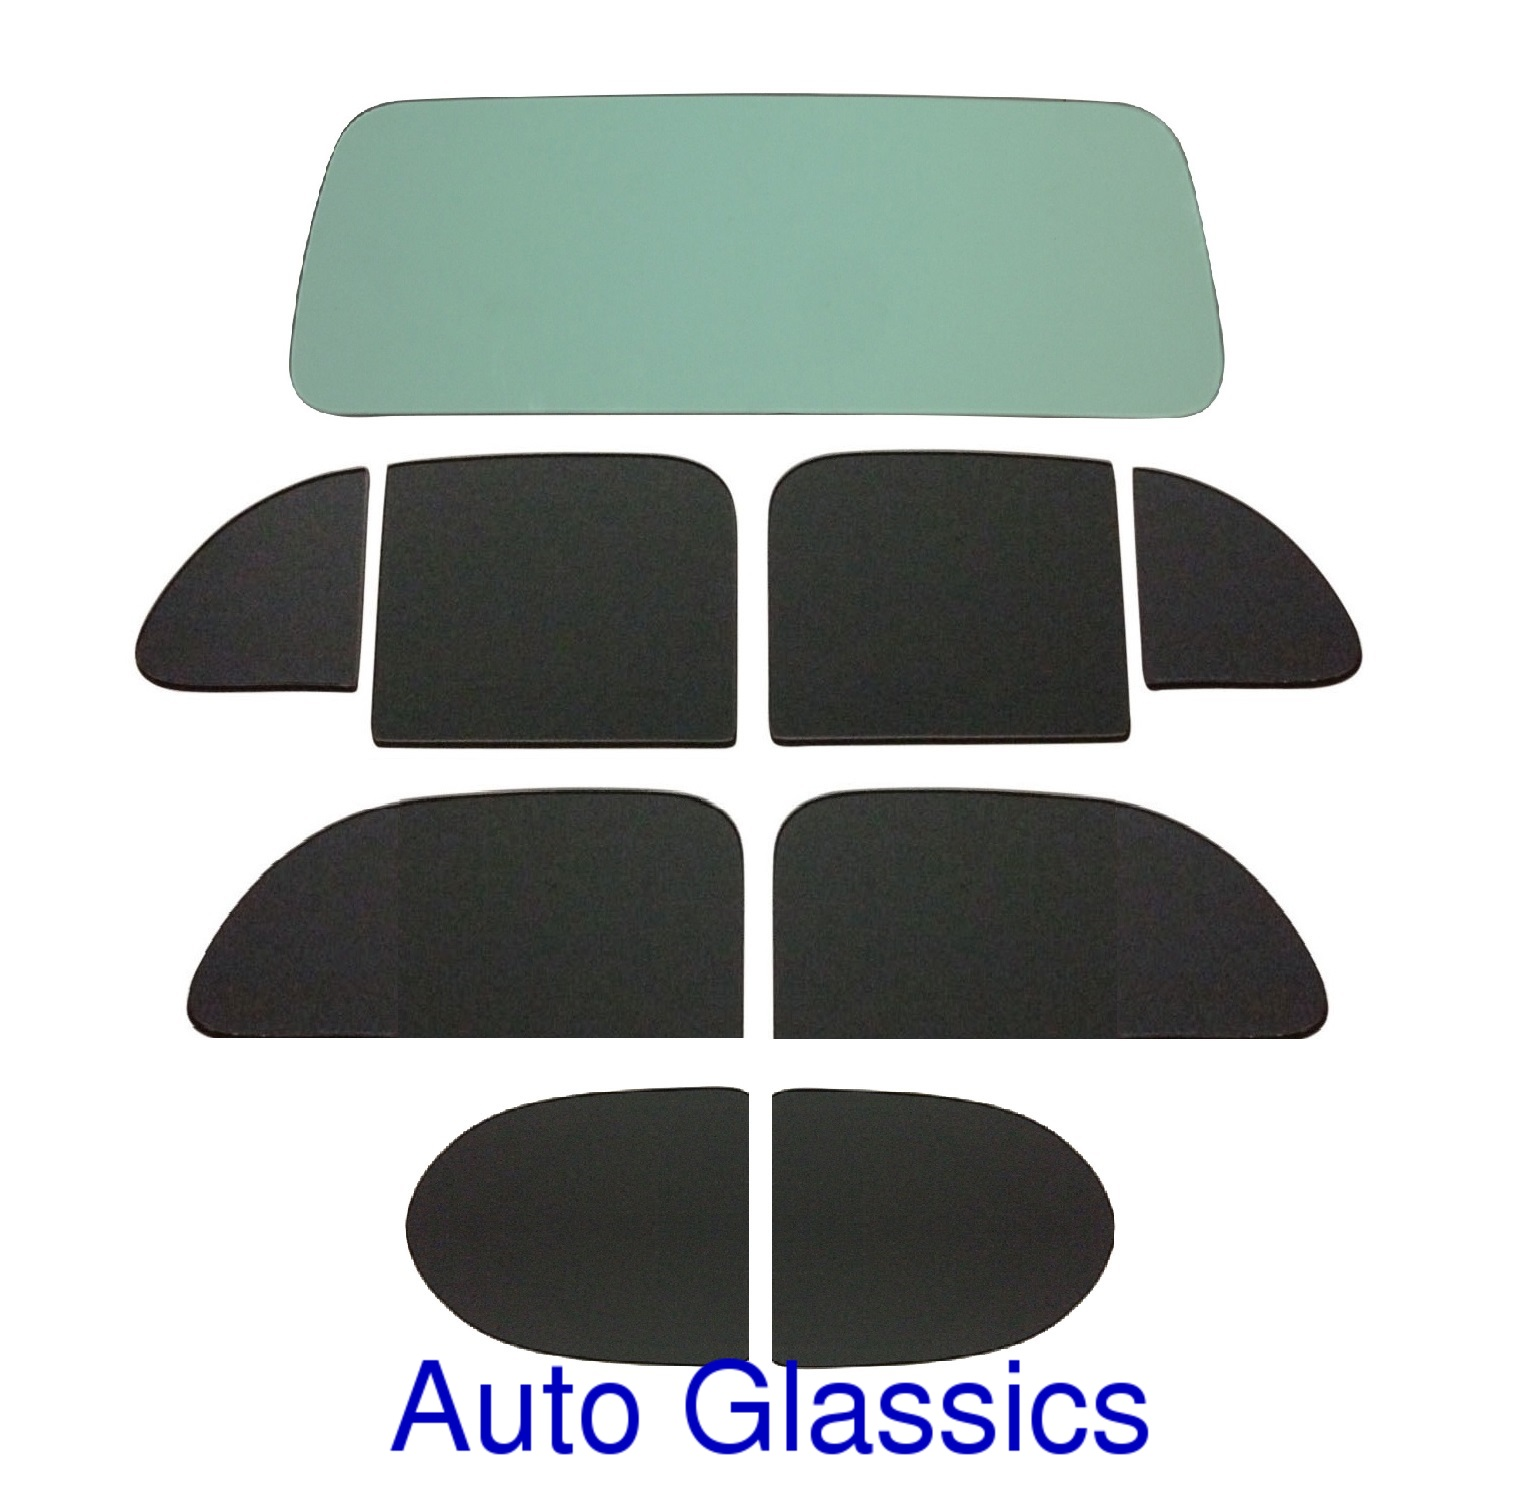 1938 Dodge D8 2 Door Sedan Classic Auto Glass Kit